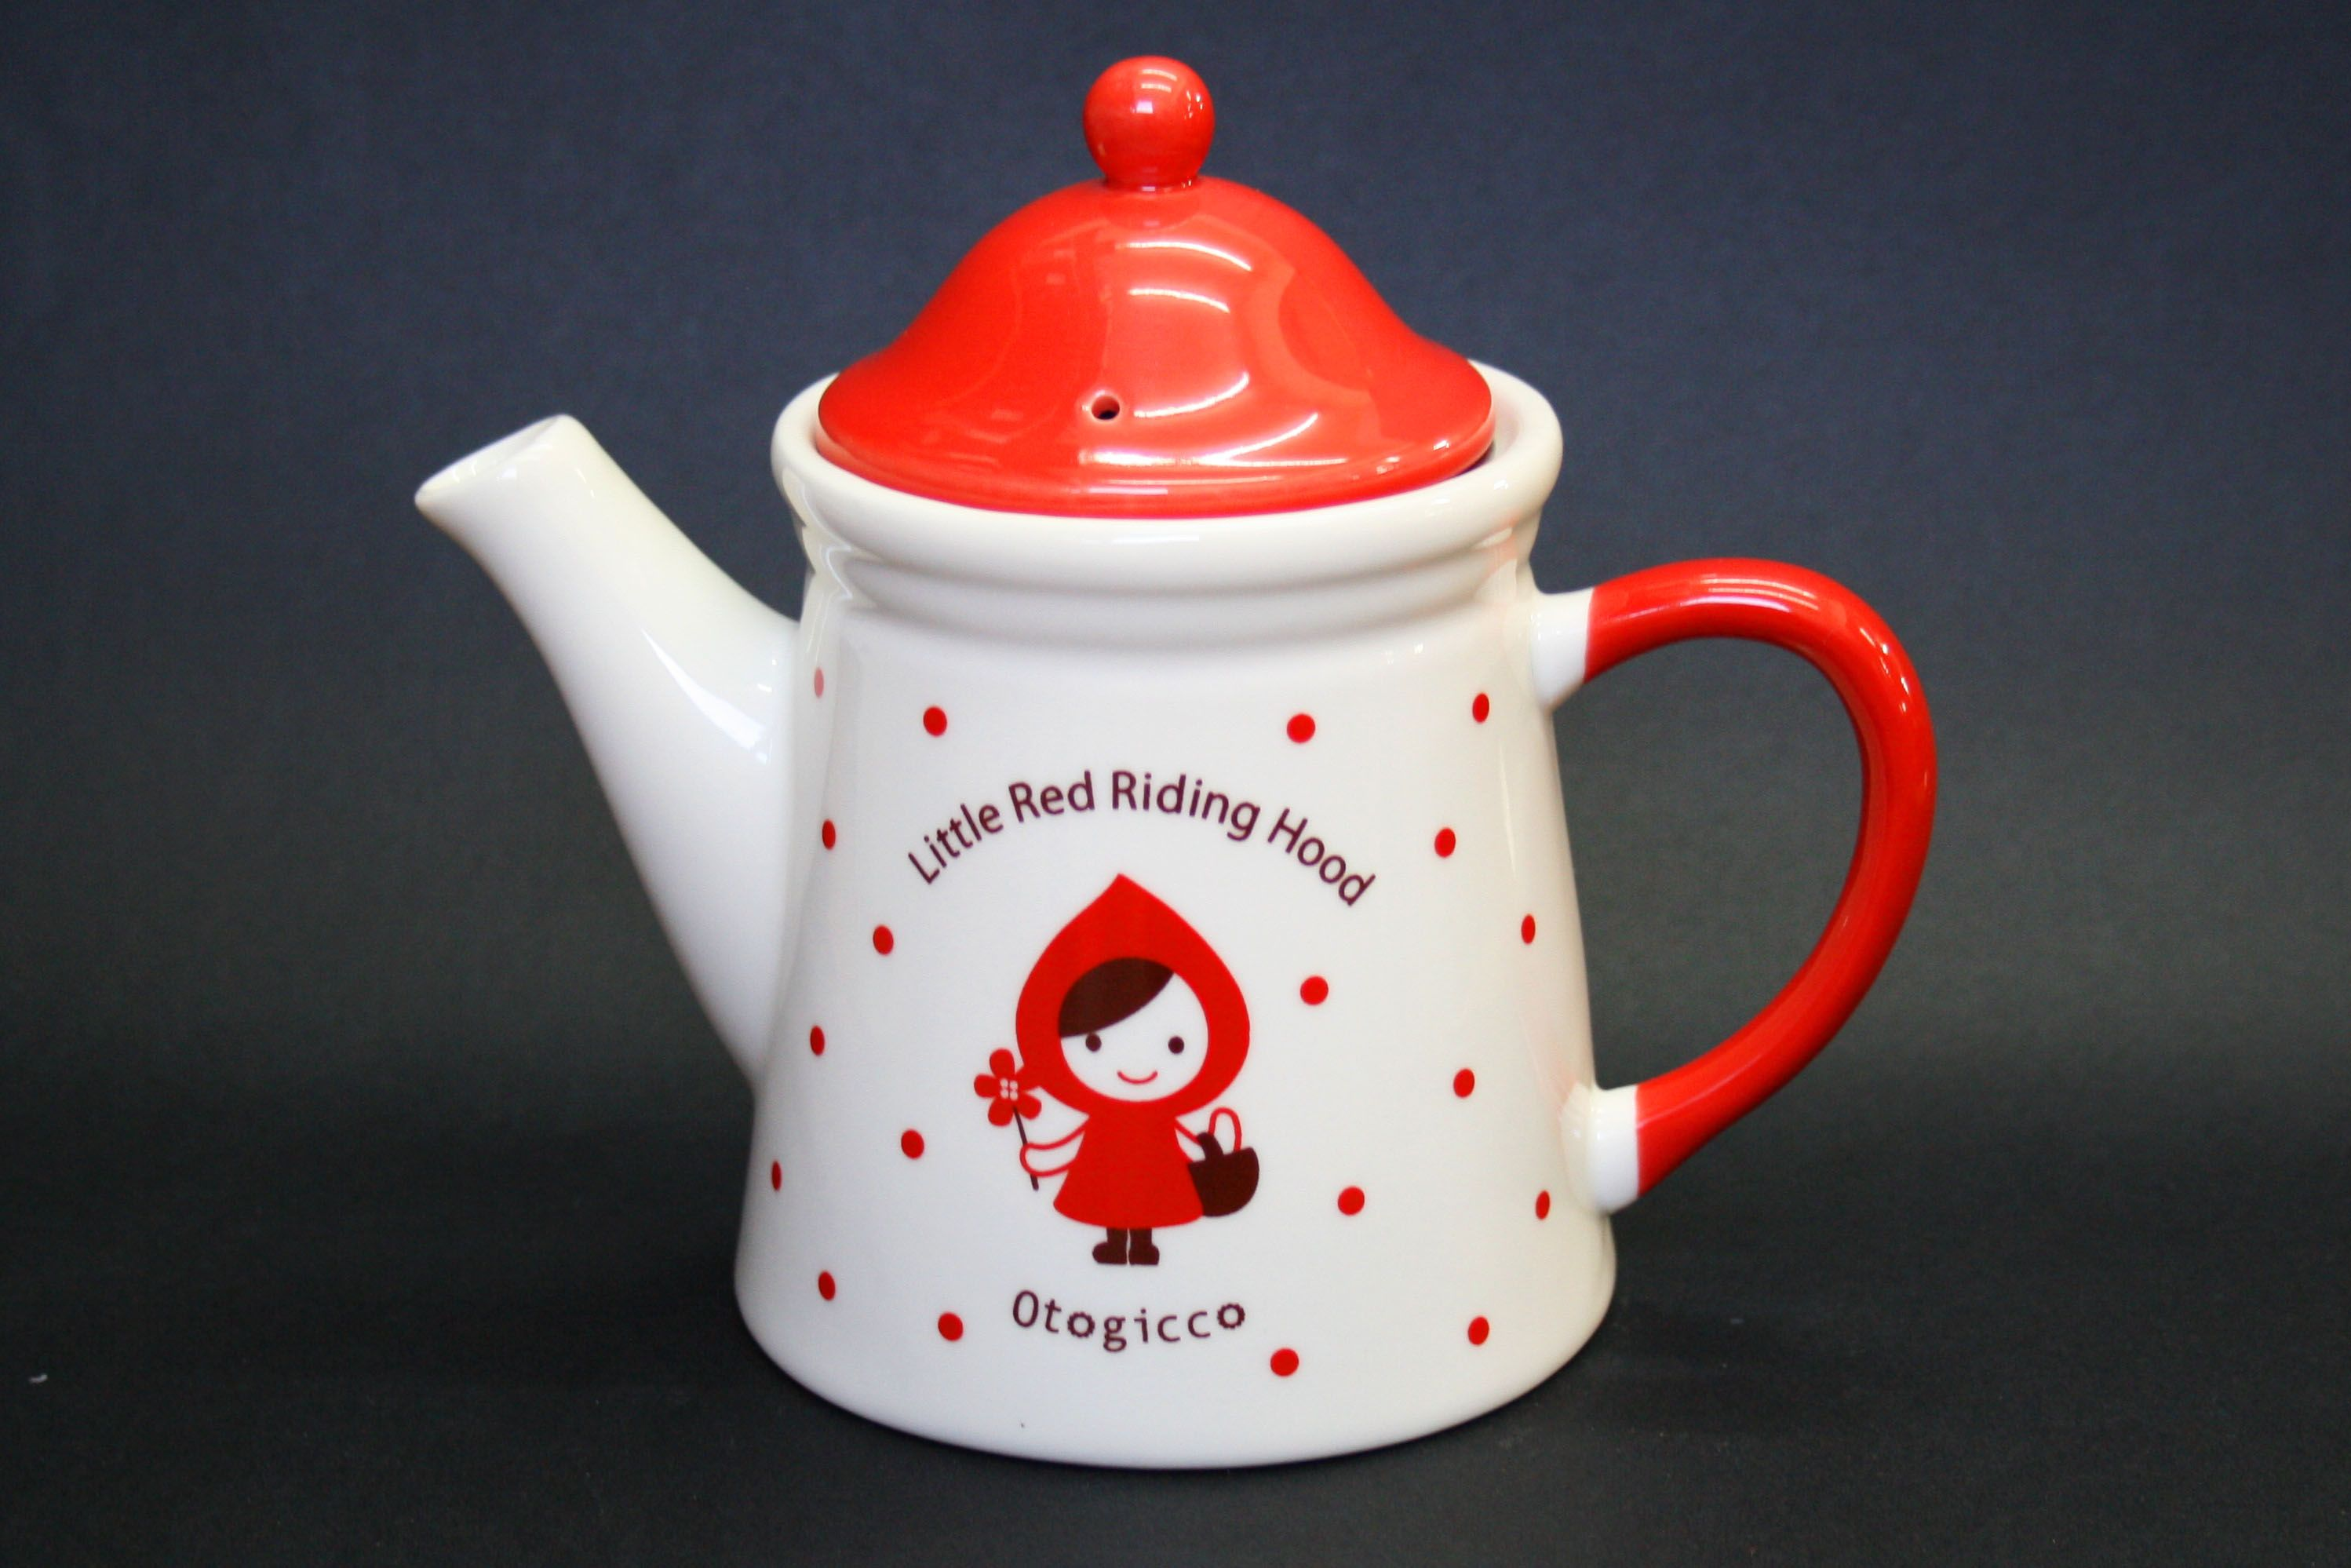 #25 - Ottogicco Little Red Riding Hood. This one has an infuser, so it's functional as well as cute.